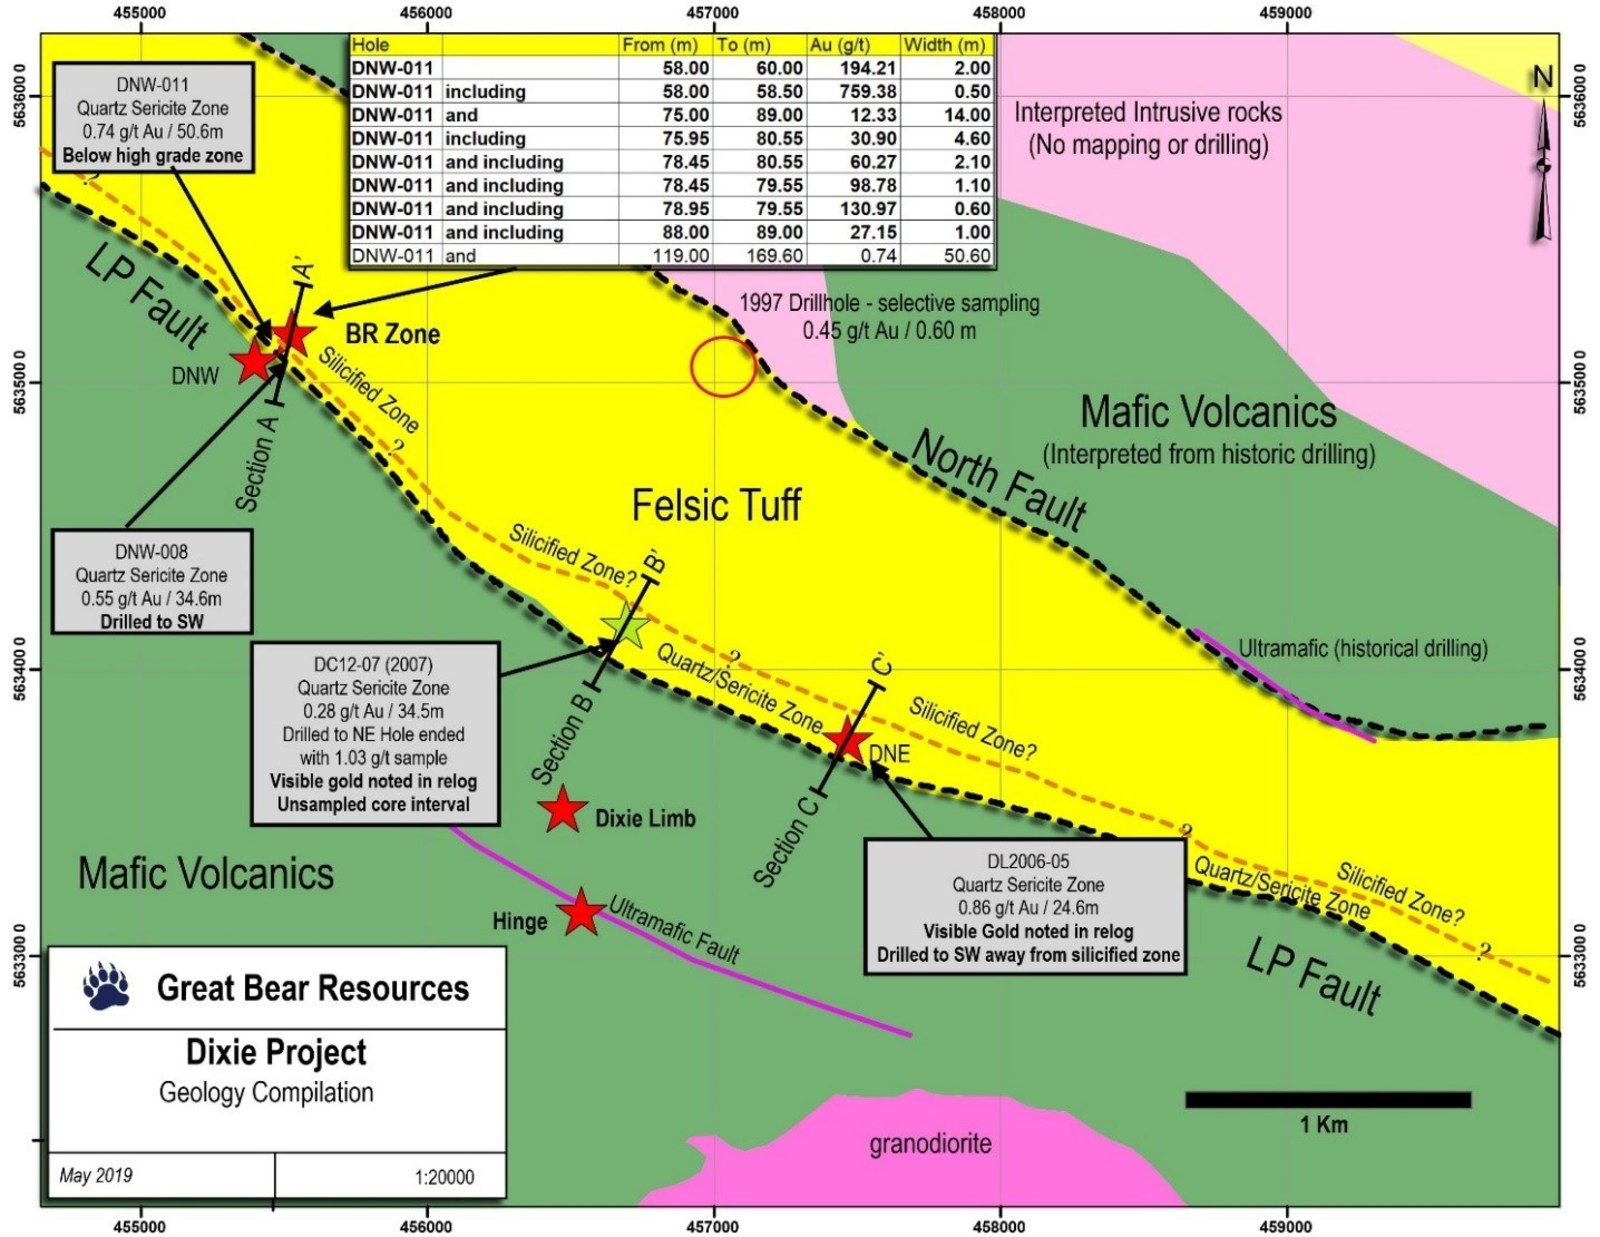 Figure 3: Close-in view of the LP Fault and Bear-Rimini discovery, showing highlighted drill holes completed across 2.5 kilometres of strike length into the Quartz-Sericite zone.  The adjacent Silicified Zone which hosts high-grade gold in DNW-011 is shown extrapolated along strike. A – A' marks the location of the cross section in Figure 4.